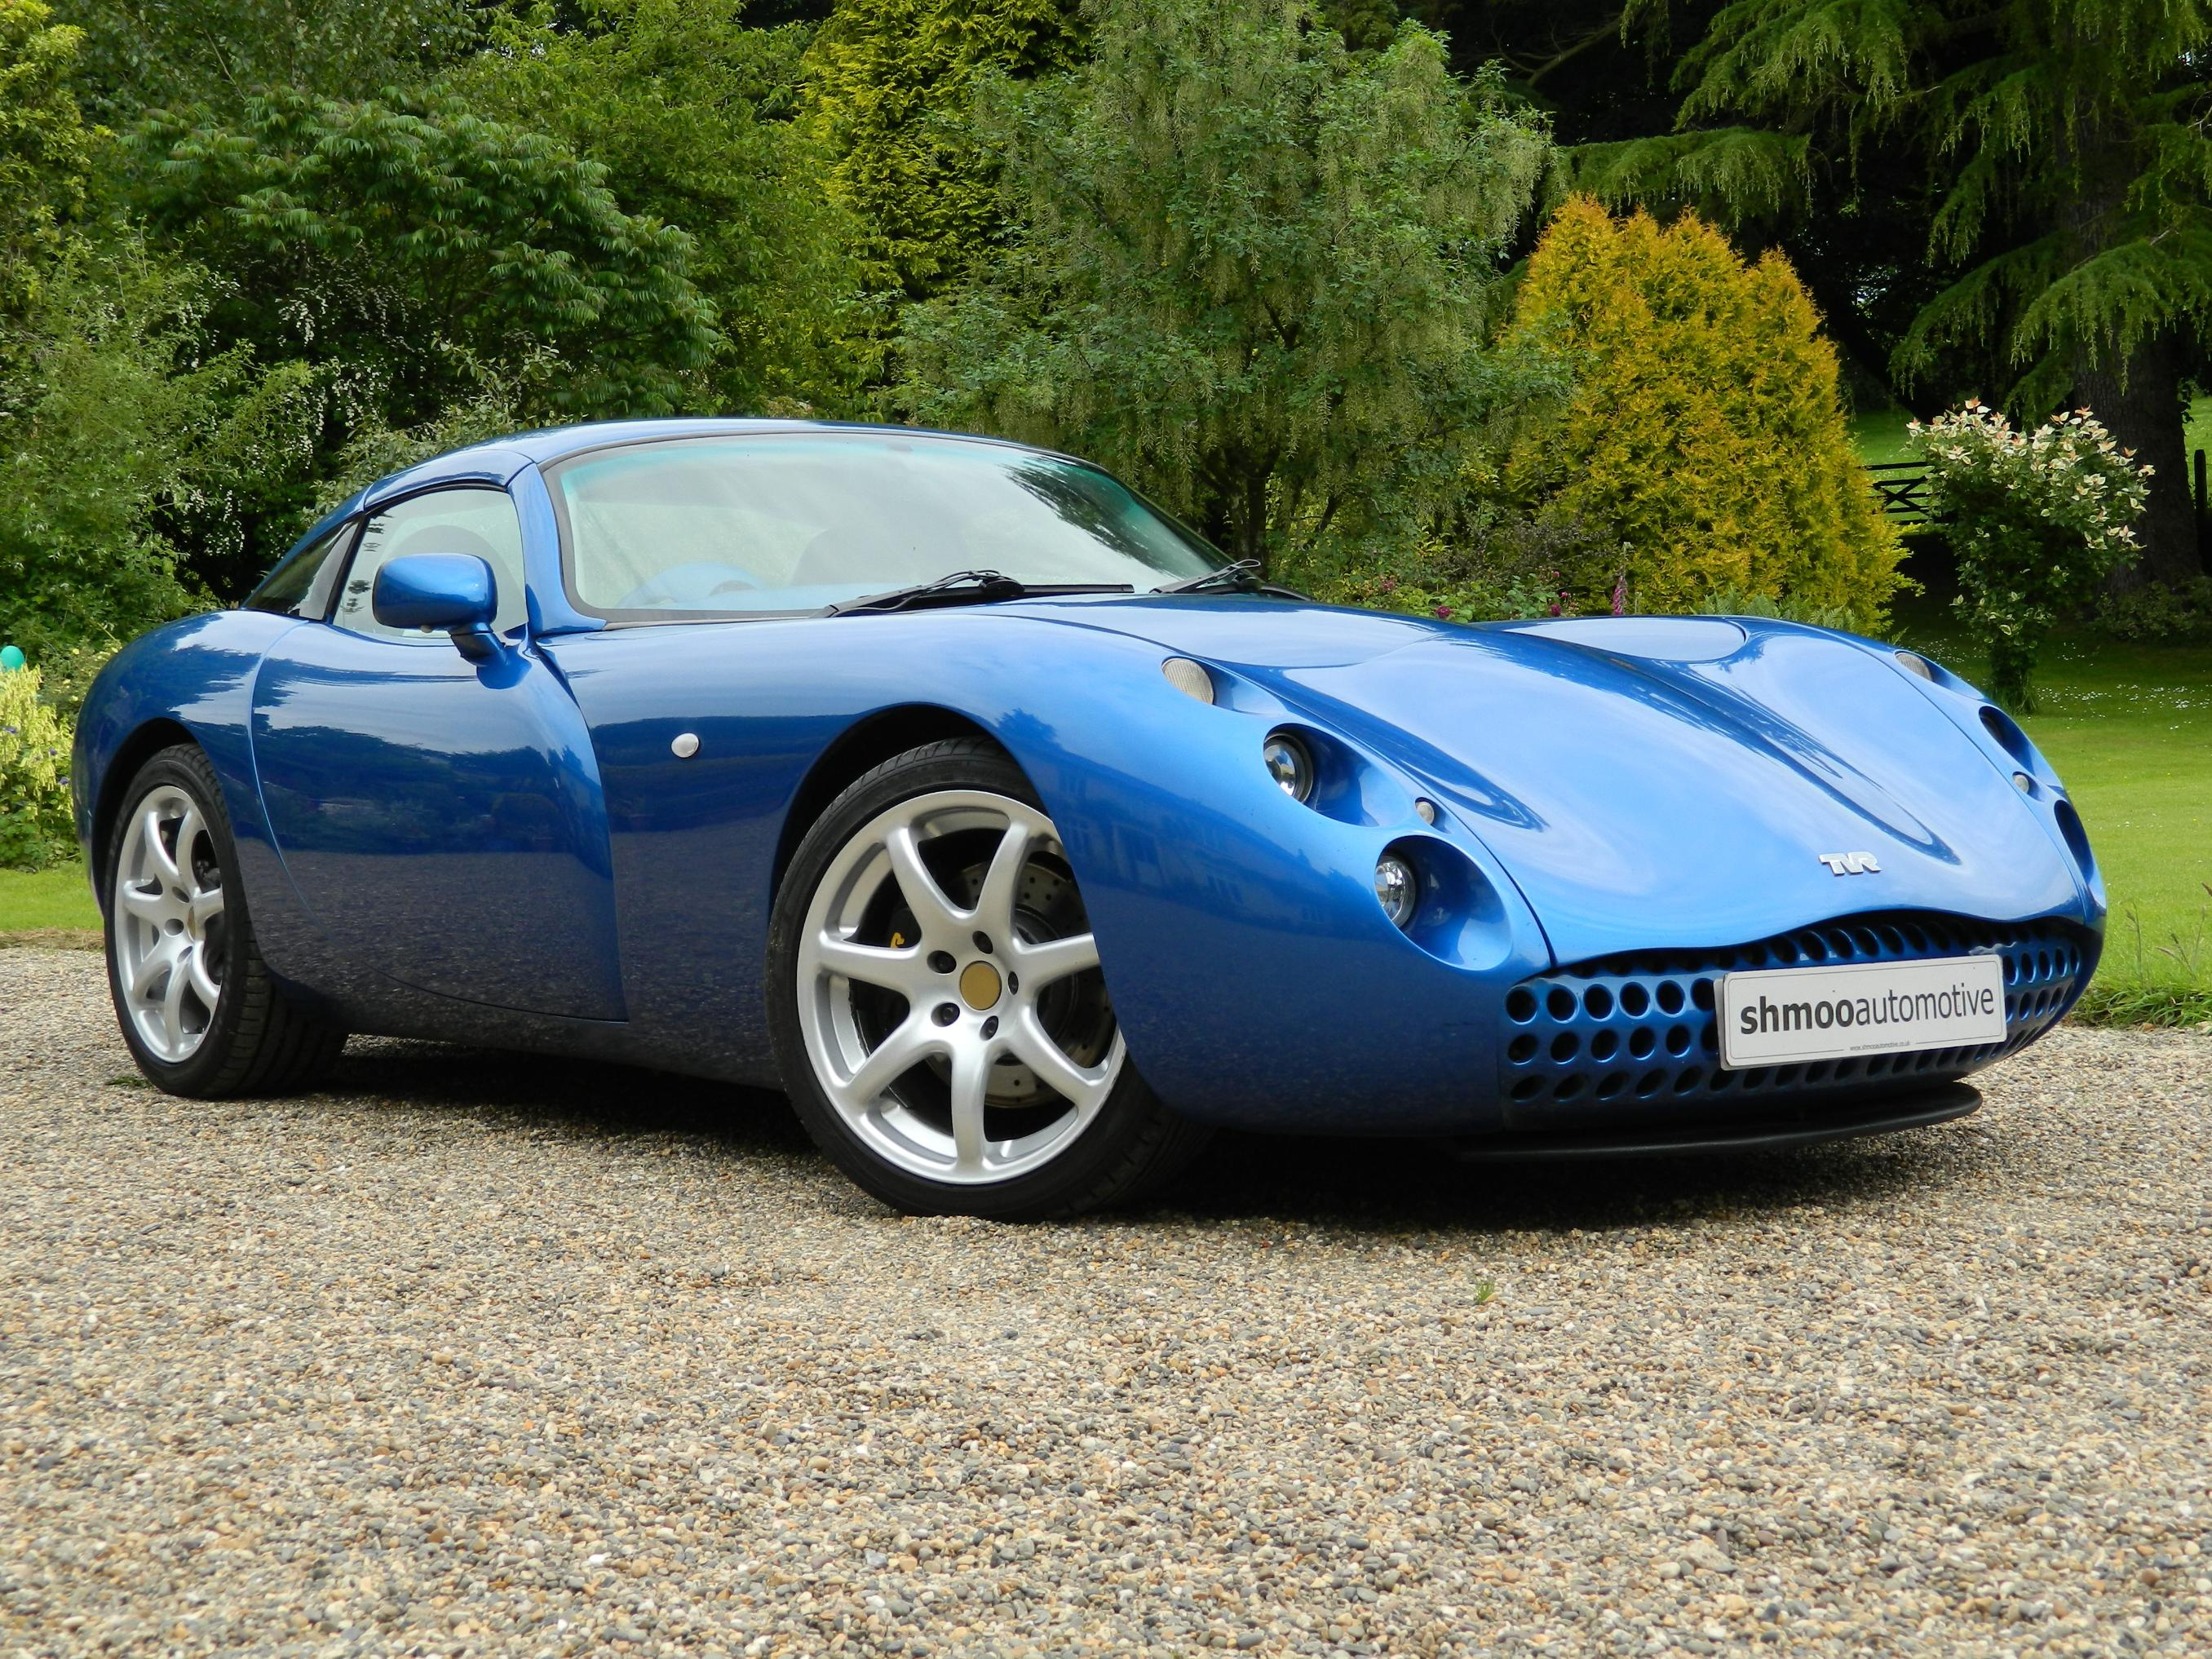 Tvr tuscan photo - 7